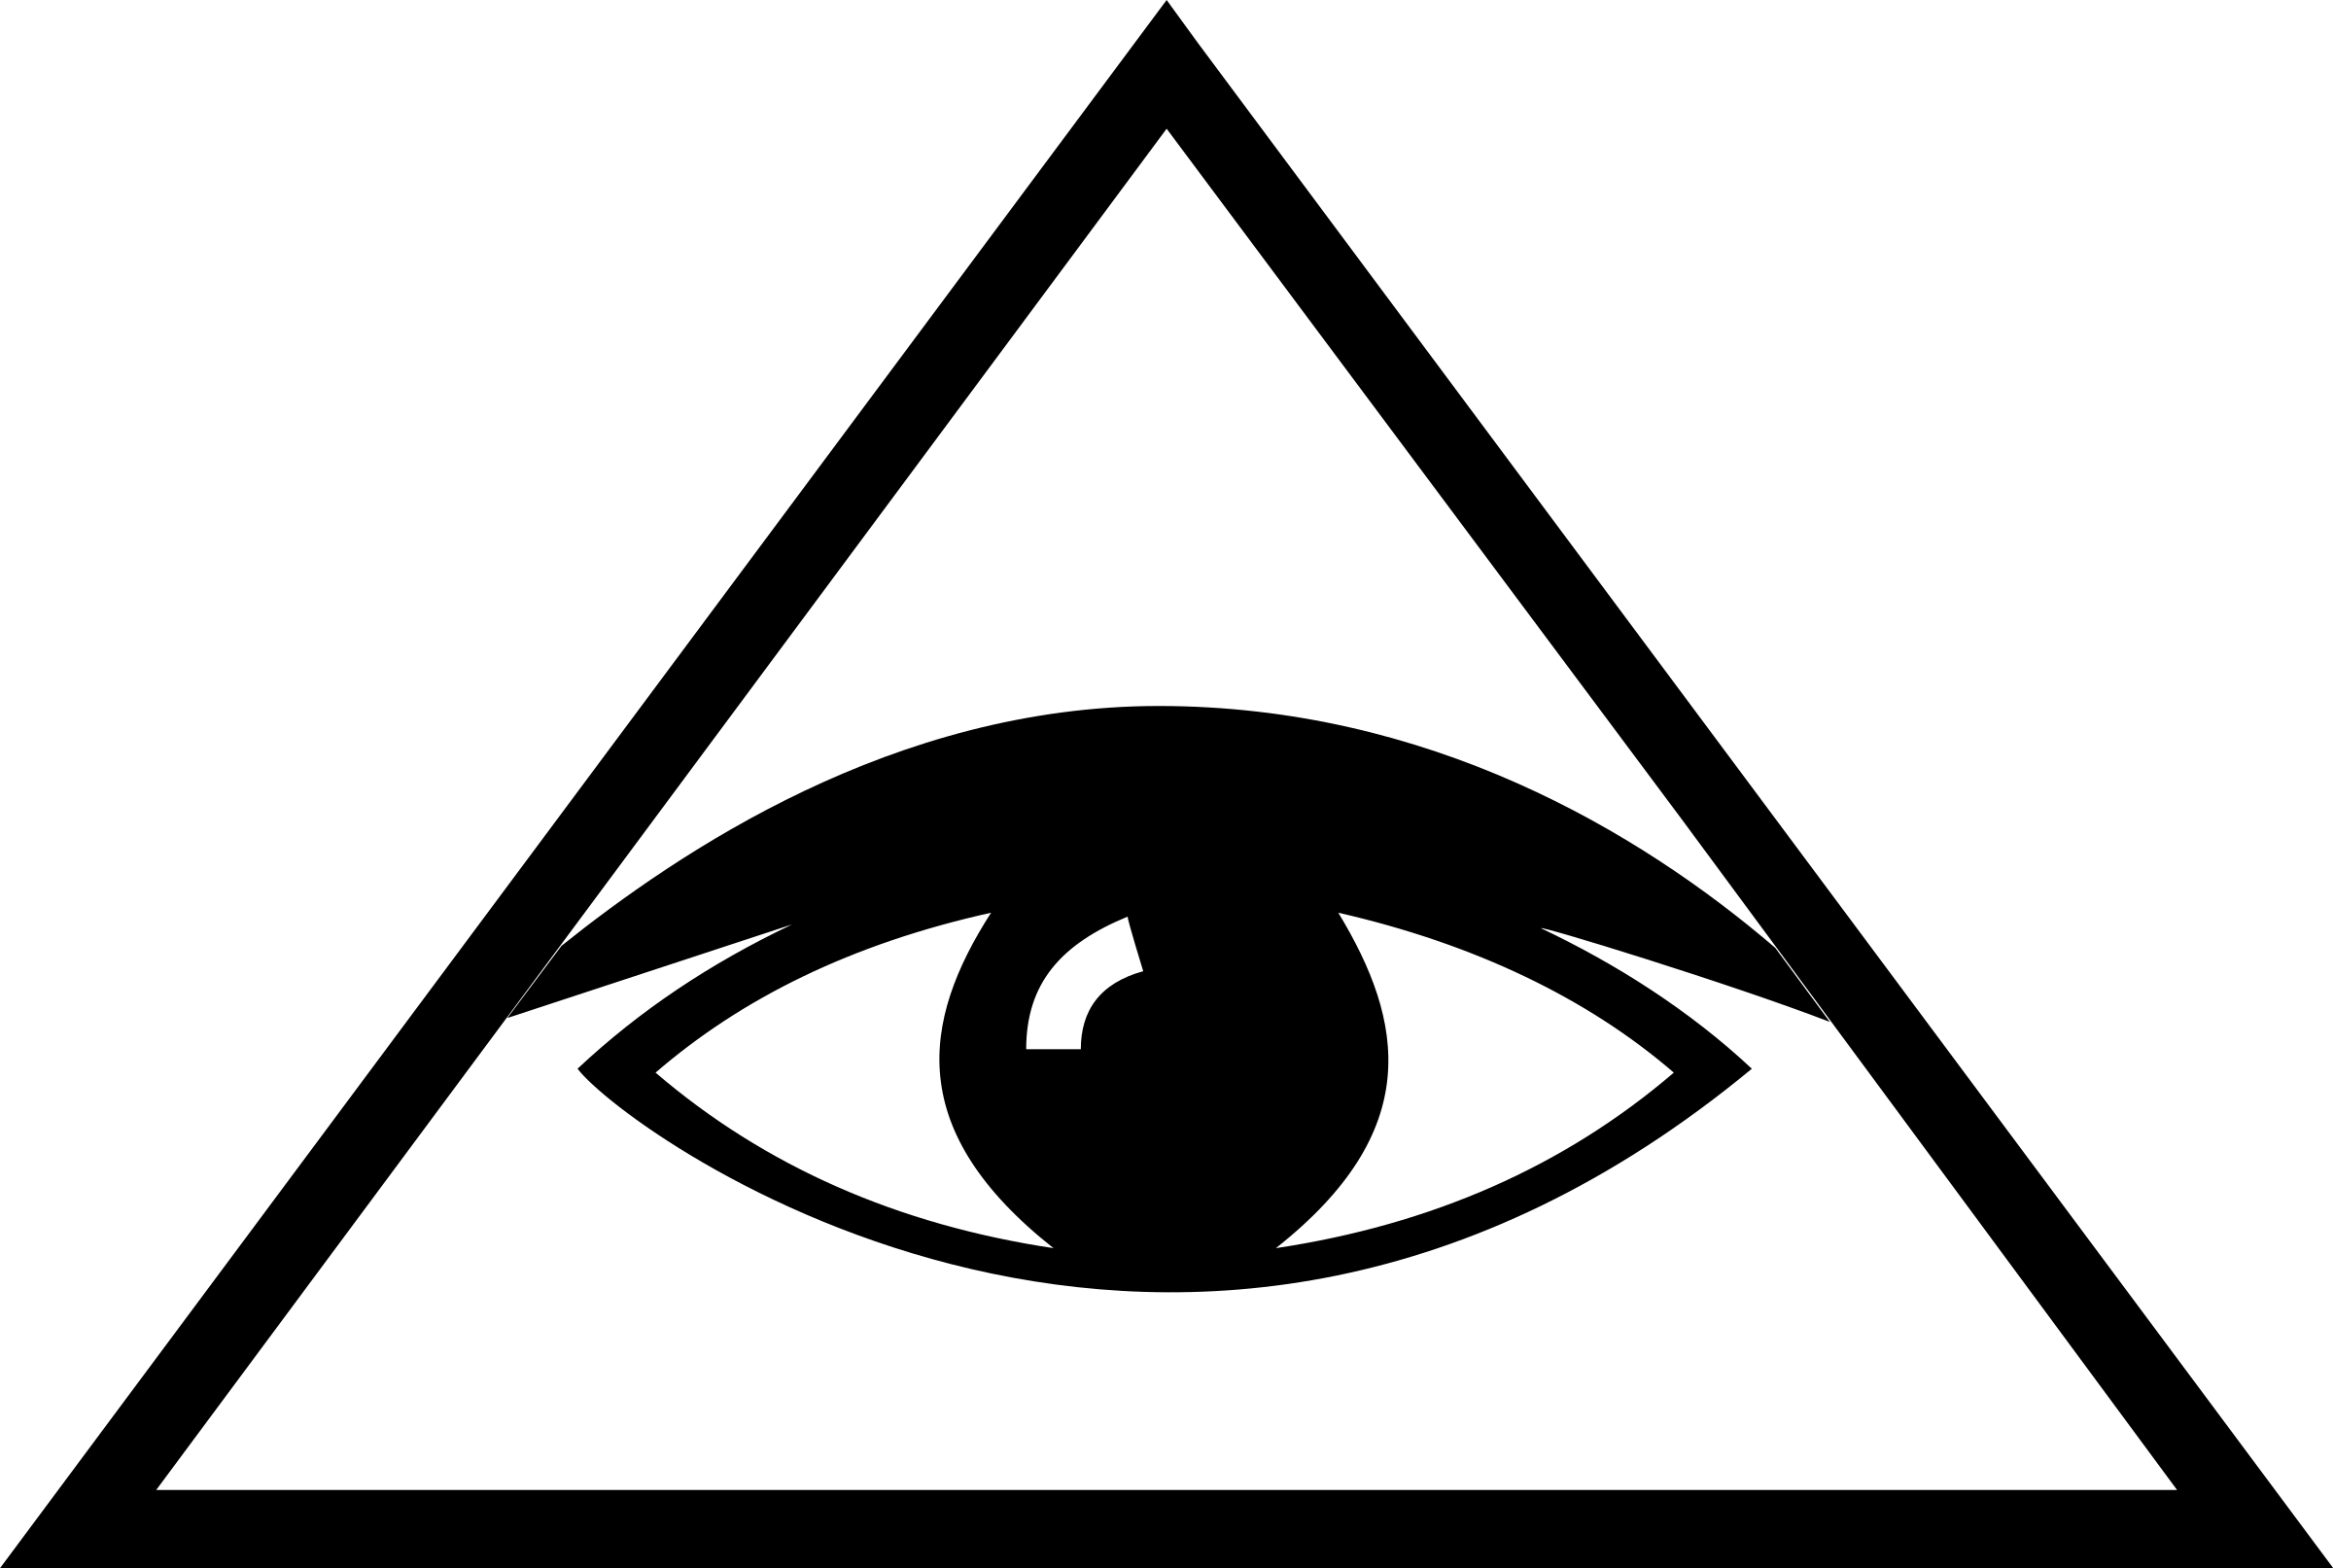 All Seeing Eye Clipart